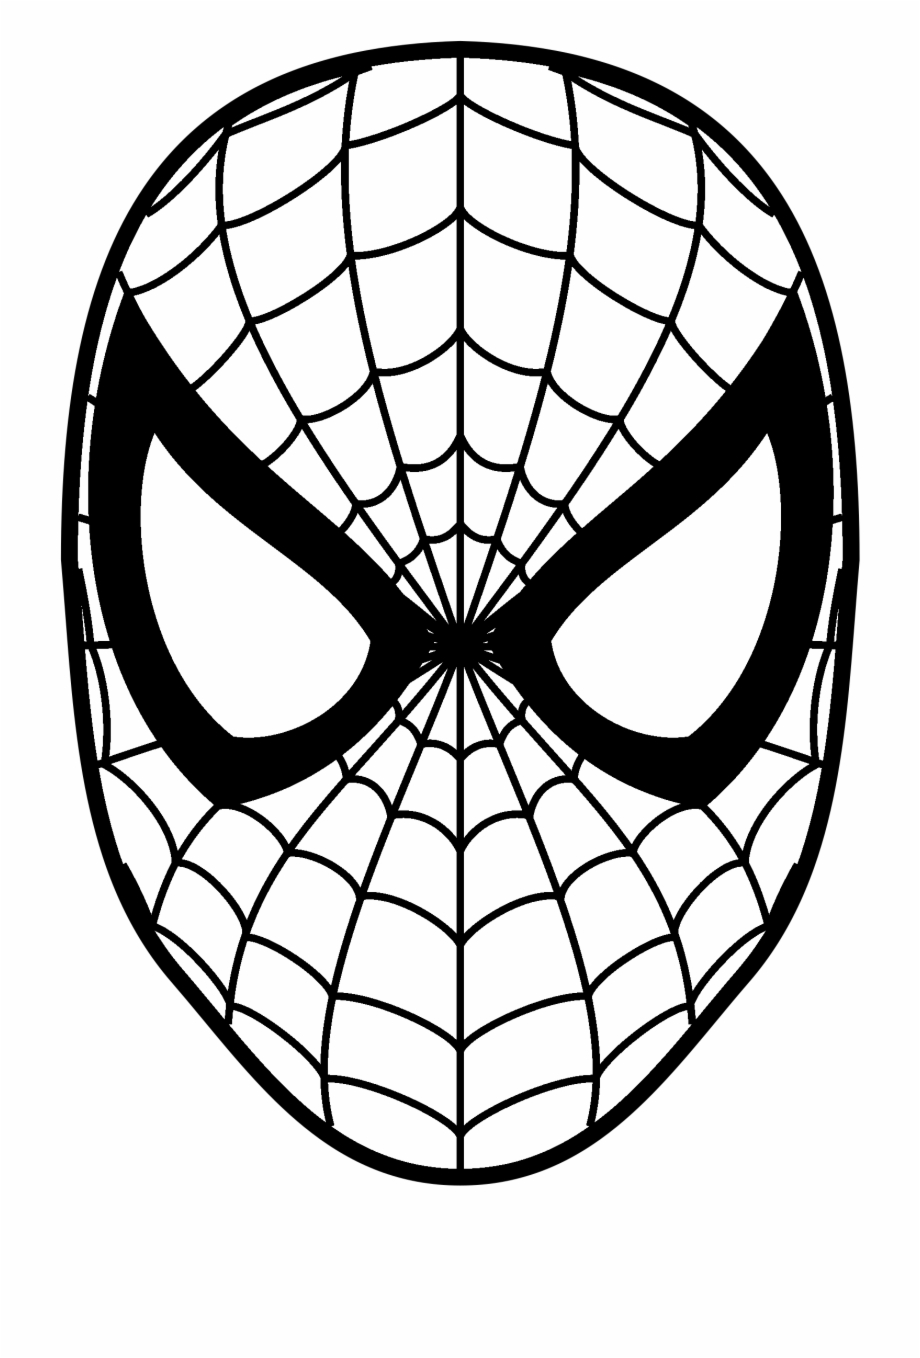 Spiderman clipart face picture royalty free download Spider Man Logo Black And White - Spiderman Face ... picture royalty free download